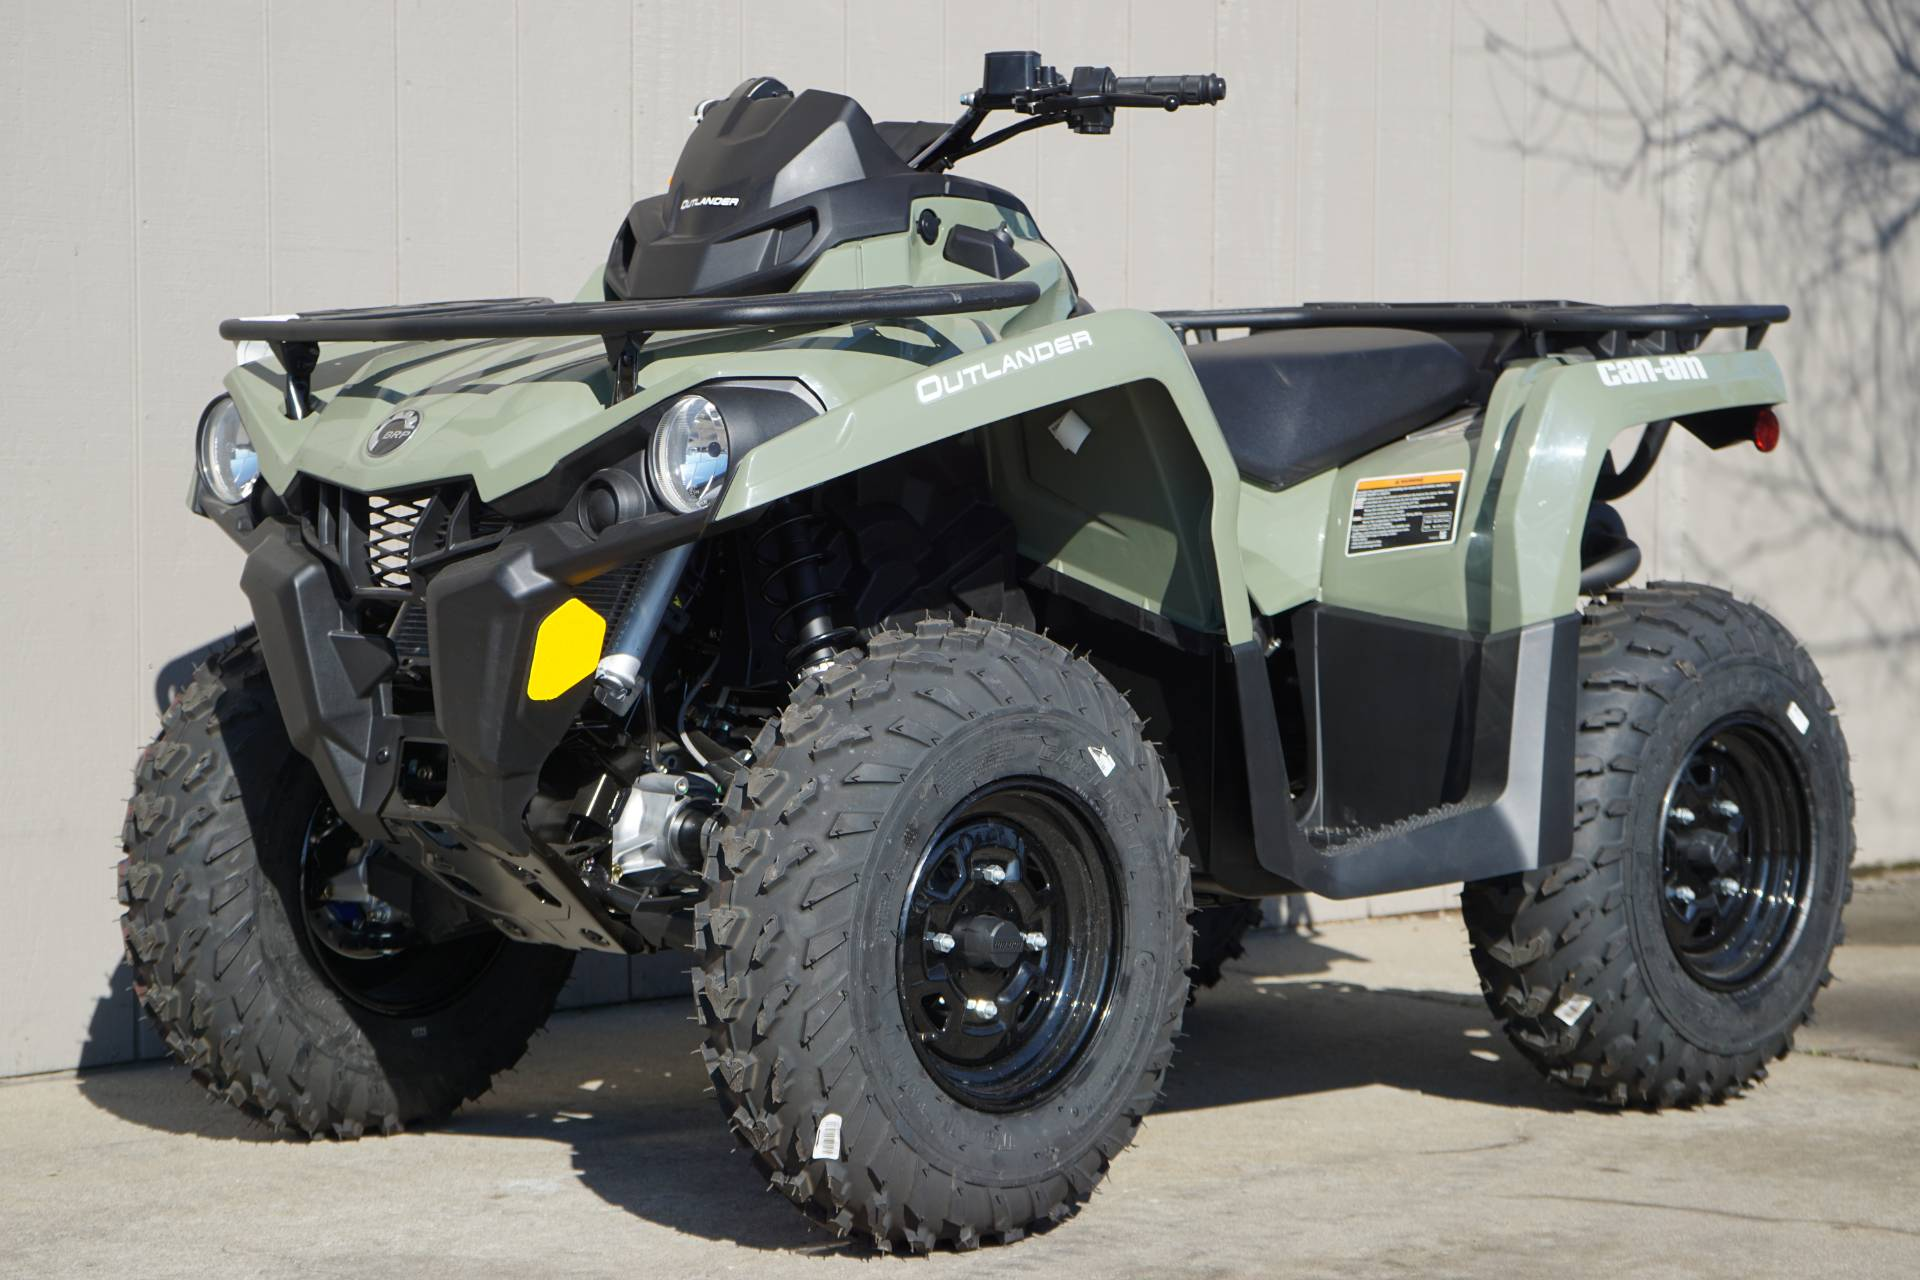 2019 Can-Am Outlander 450 for sale 151147